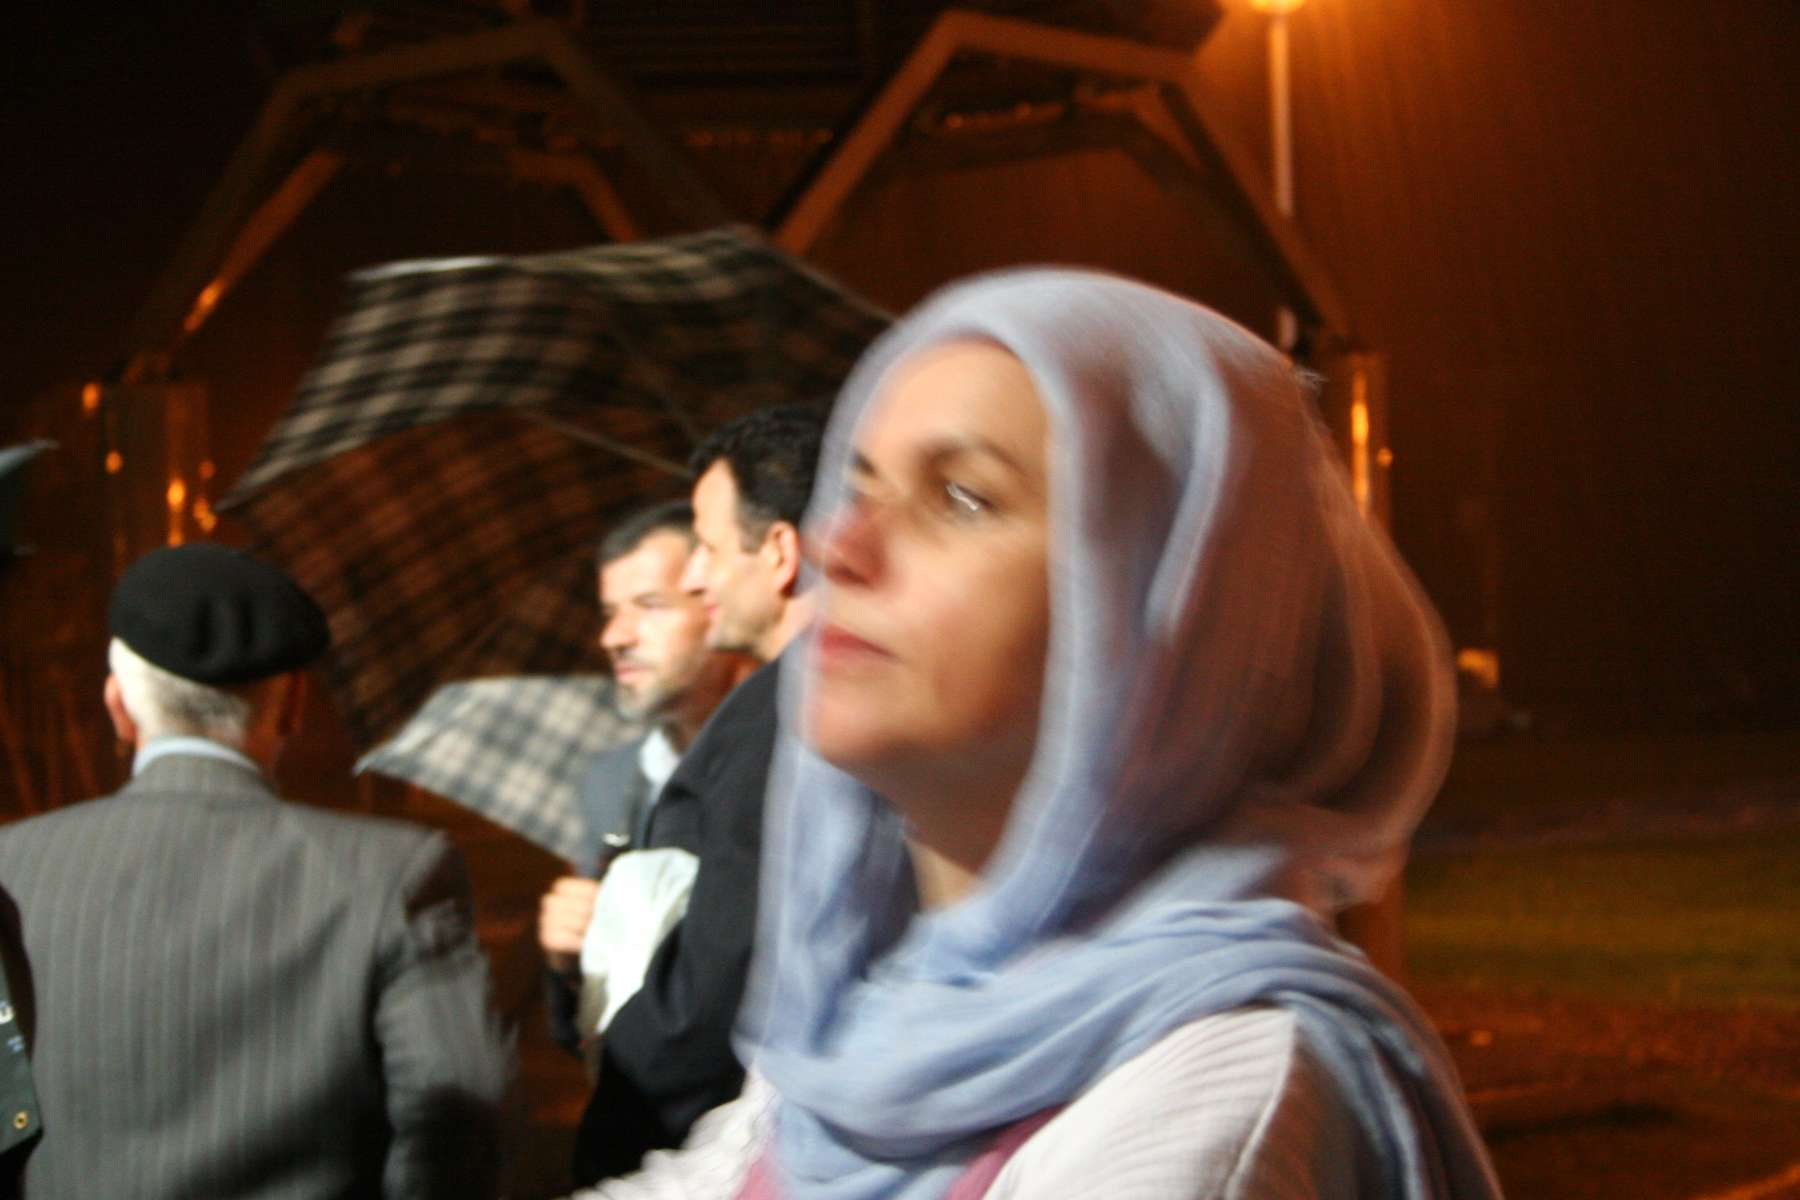 Men and women gather at the Srebrenica memorial site for prayers as rain pours on the eve of the commemoration ceremonies marking the tenth anniversary of the massacre of some 7,000 to 8,000 Muslim men and boys by Serb forces in July 1995.